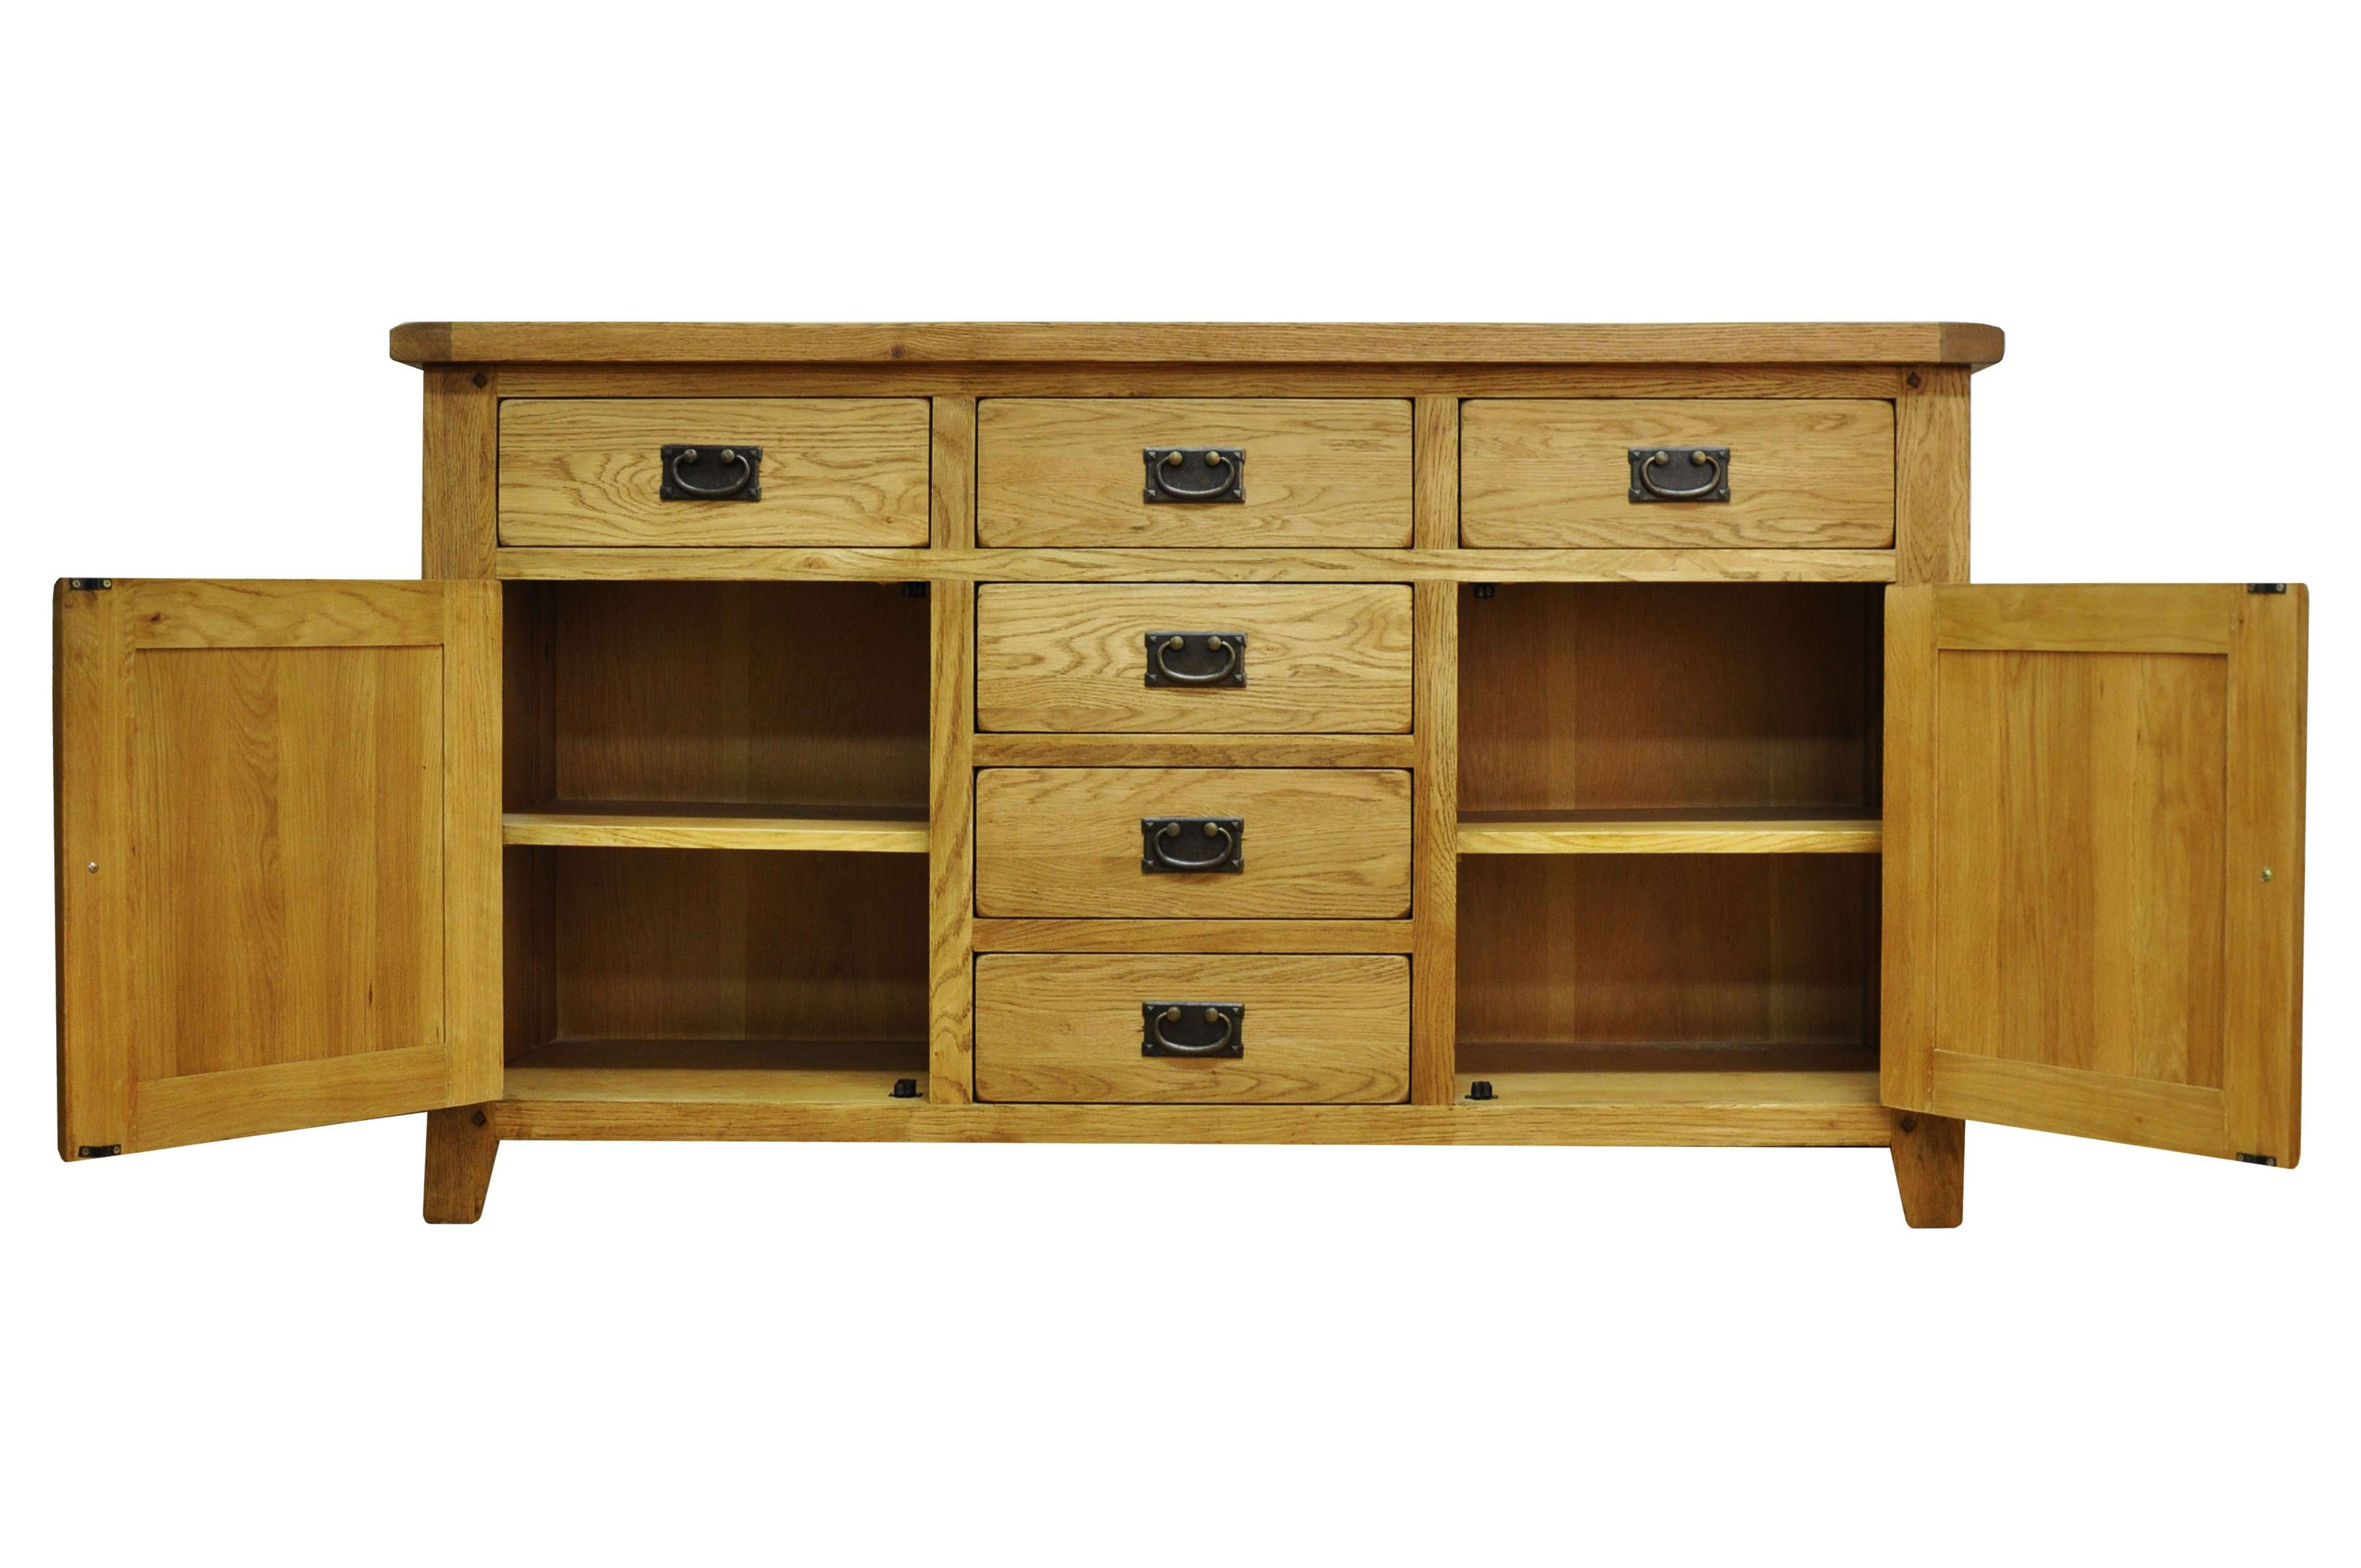 Oldbury Rustic Oak Sideboard With 2 Doors And 6 Drawersstanton Intended For Sideboards With Drawers (View 10 of 20)